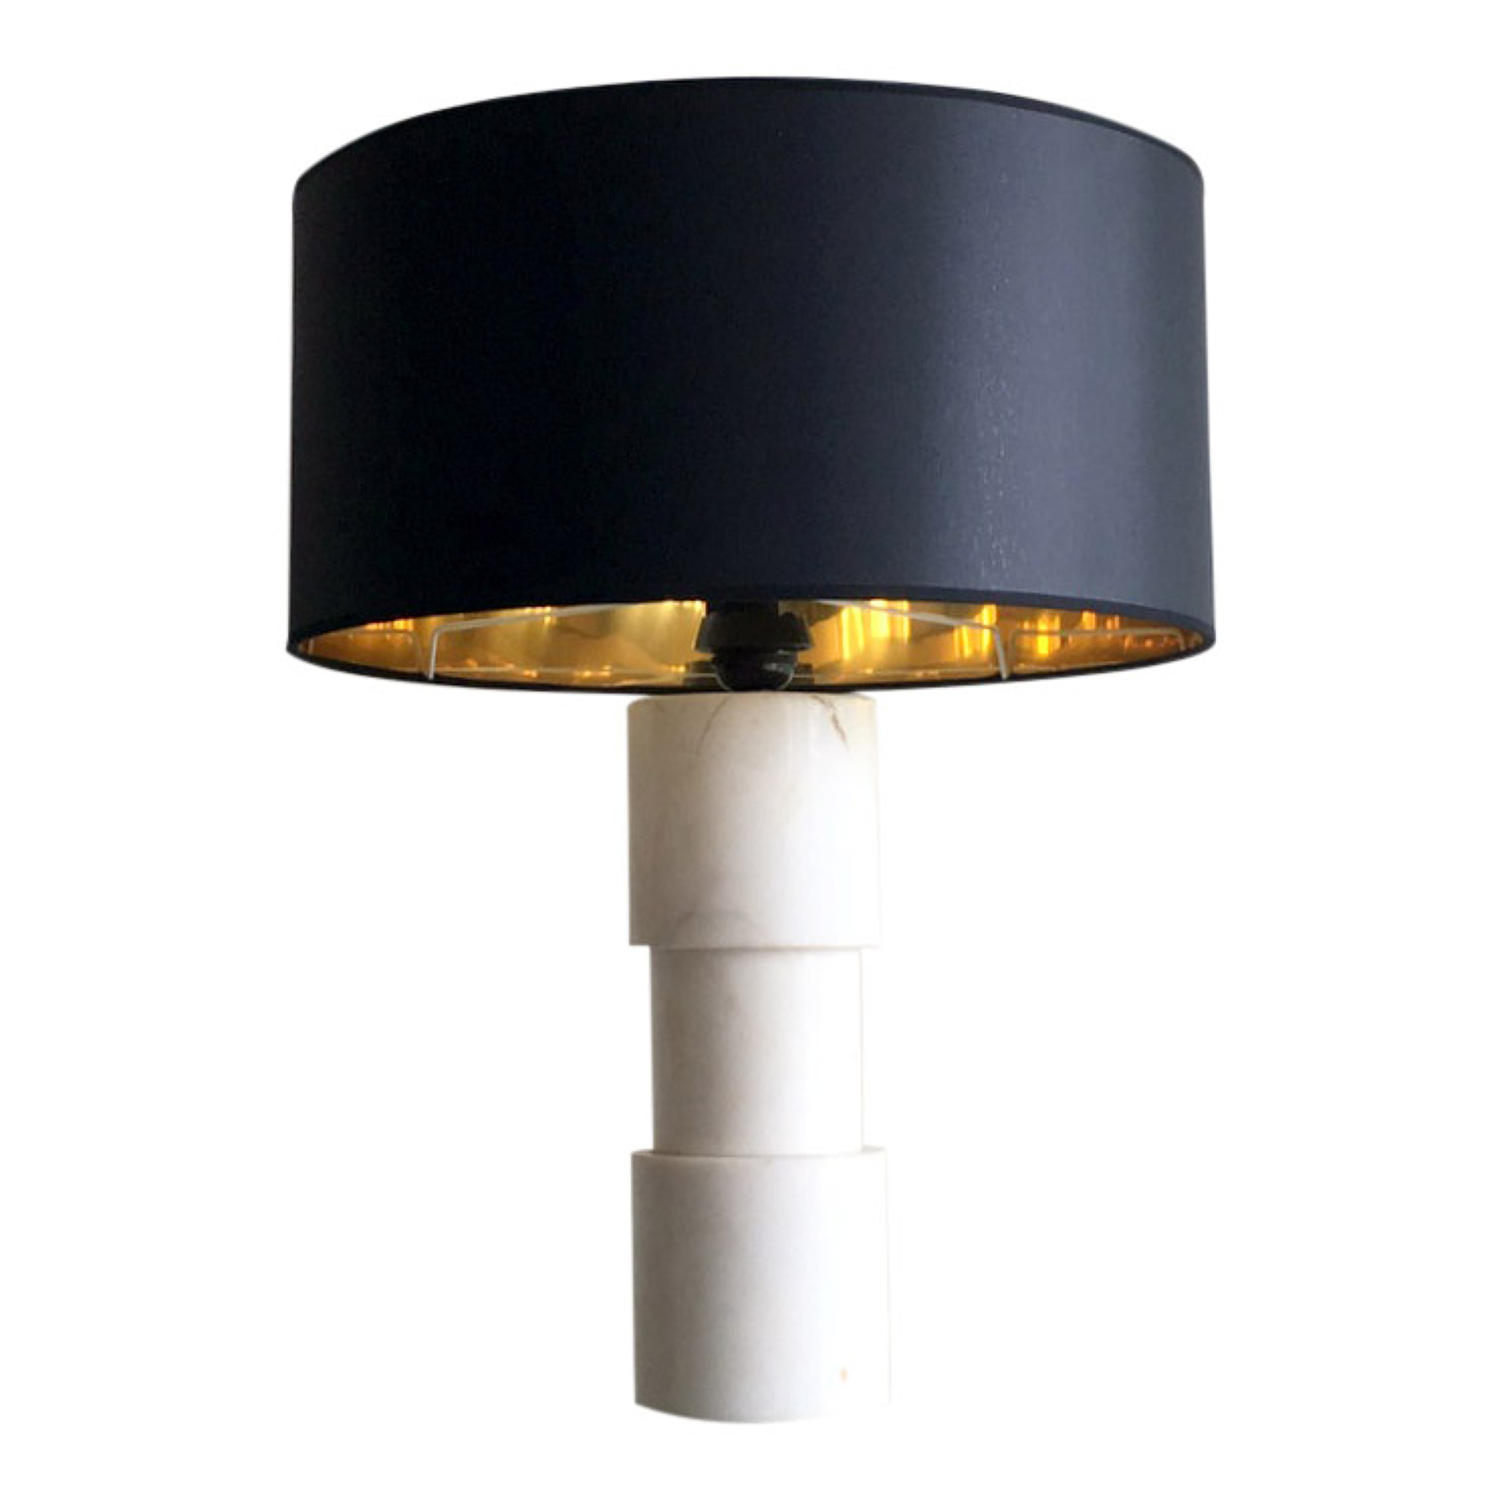 1970s Marble table lamp with reflective shade